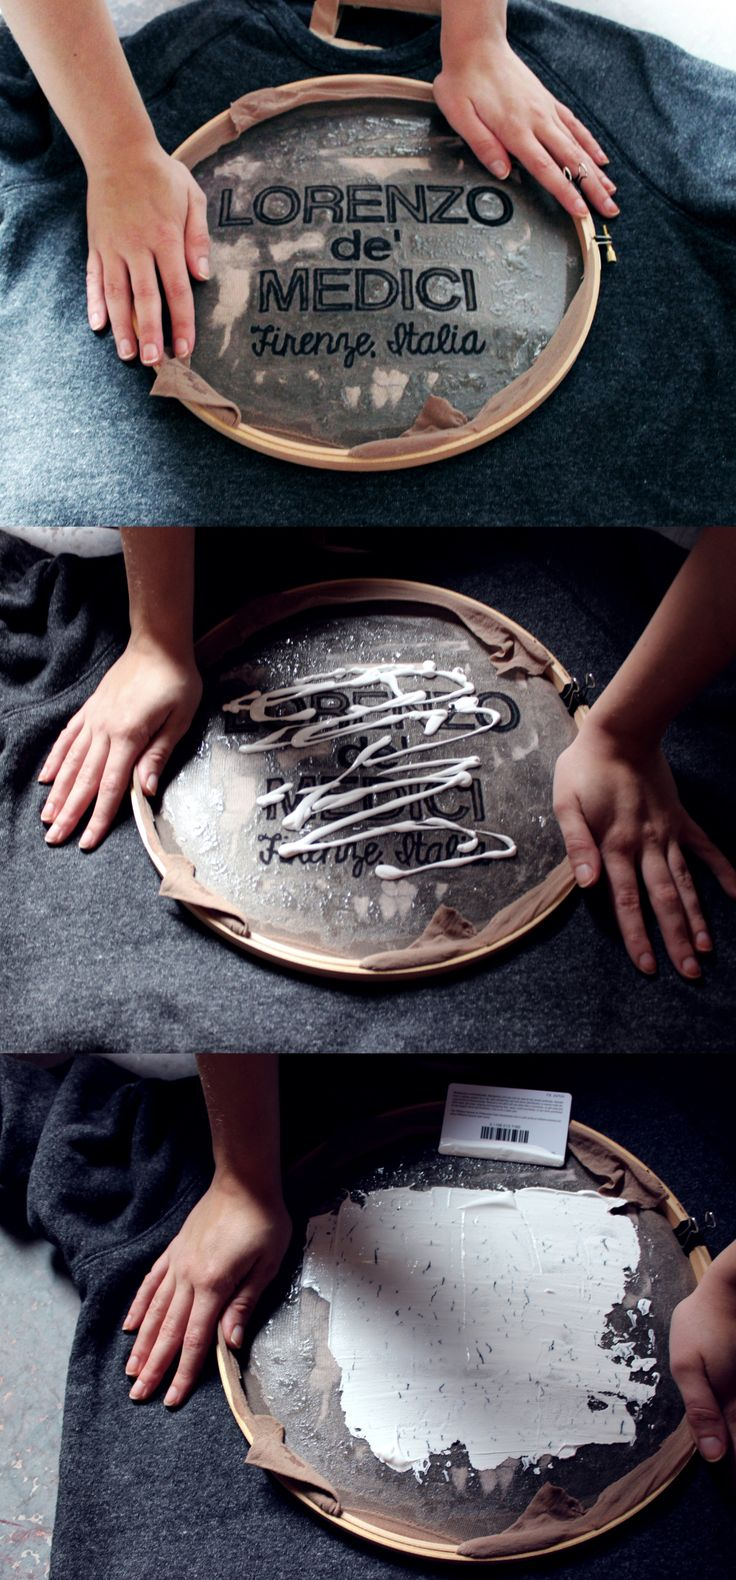 DIY Screen Printing - using an embroidery hoop and mod podge